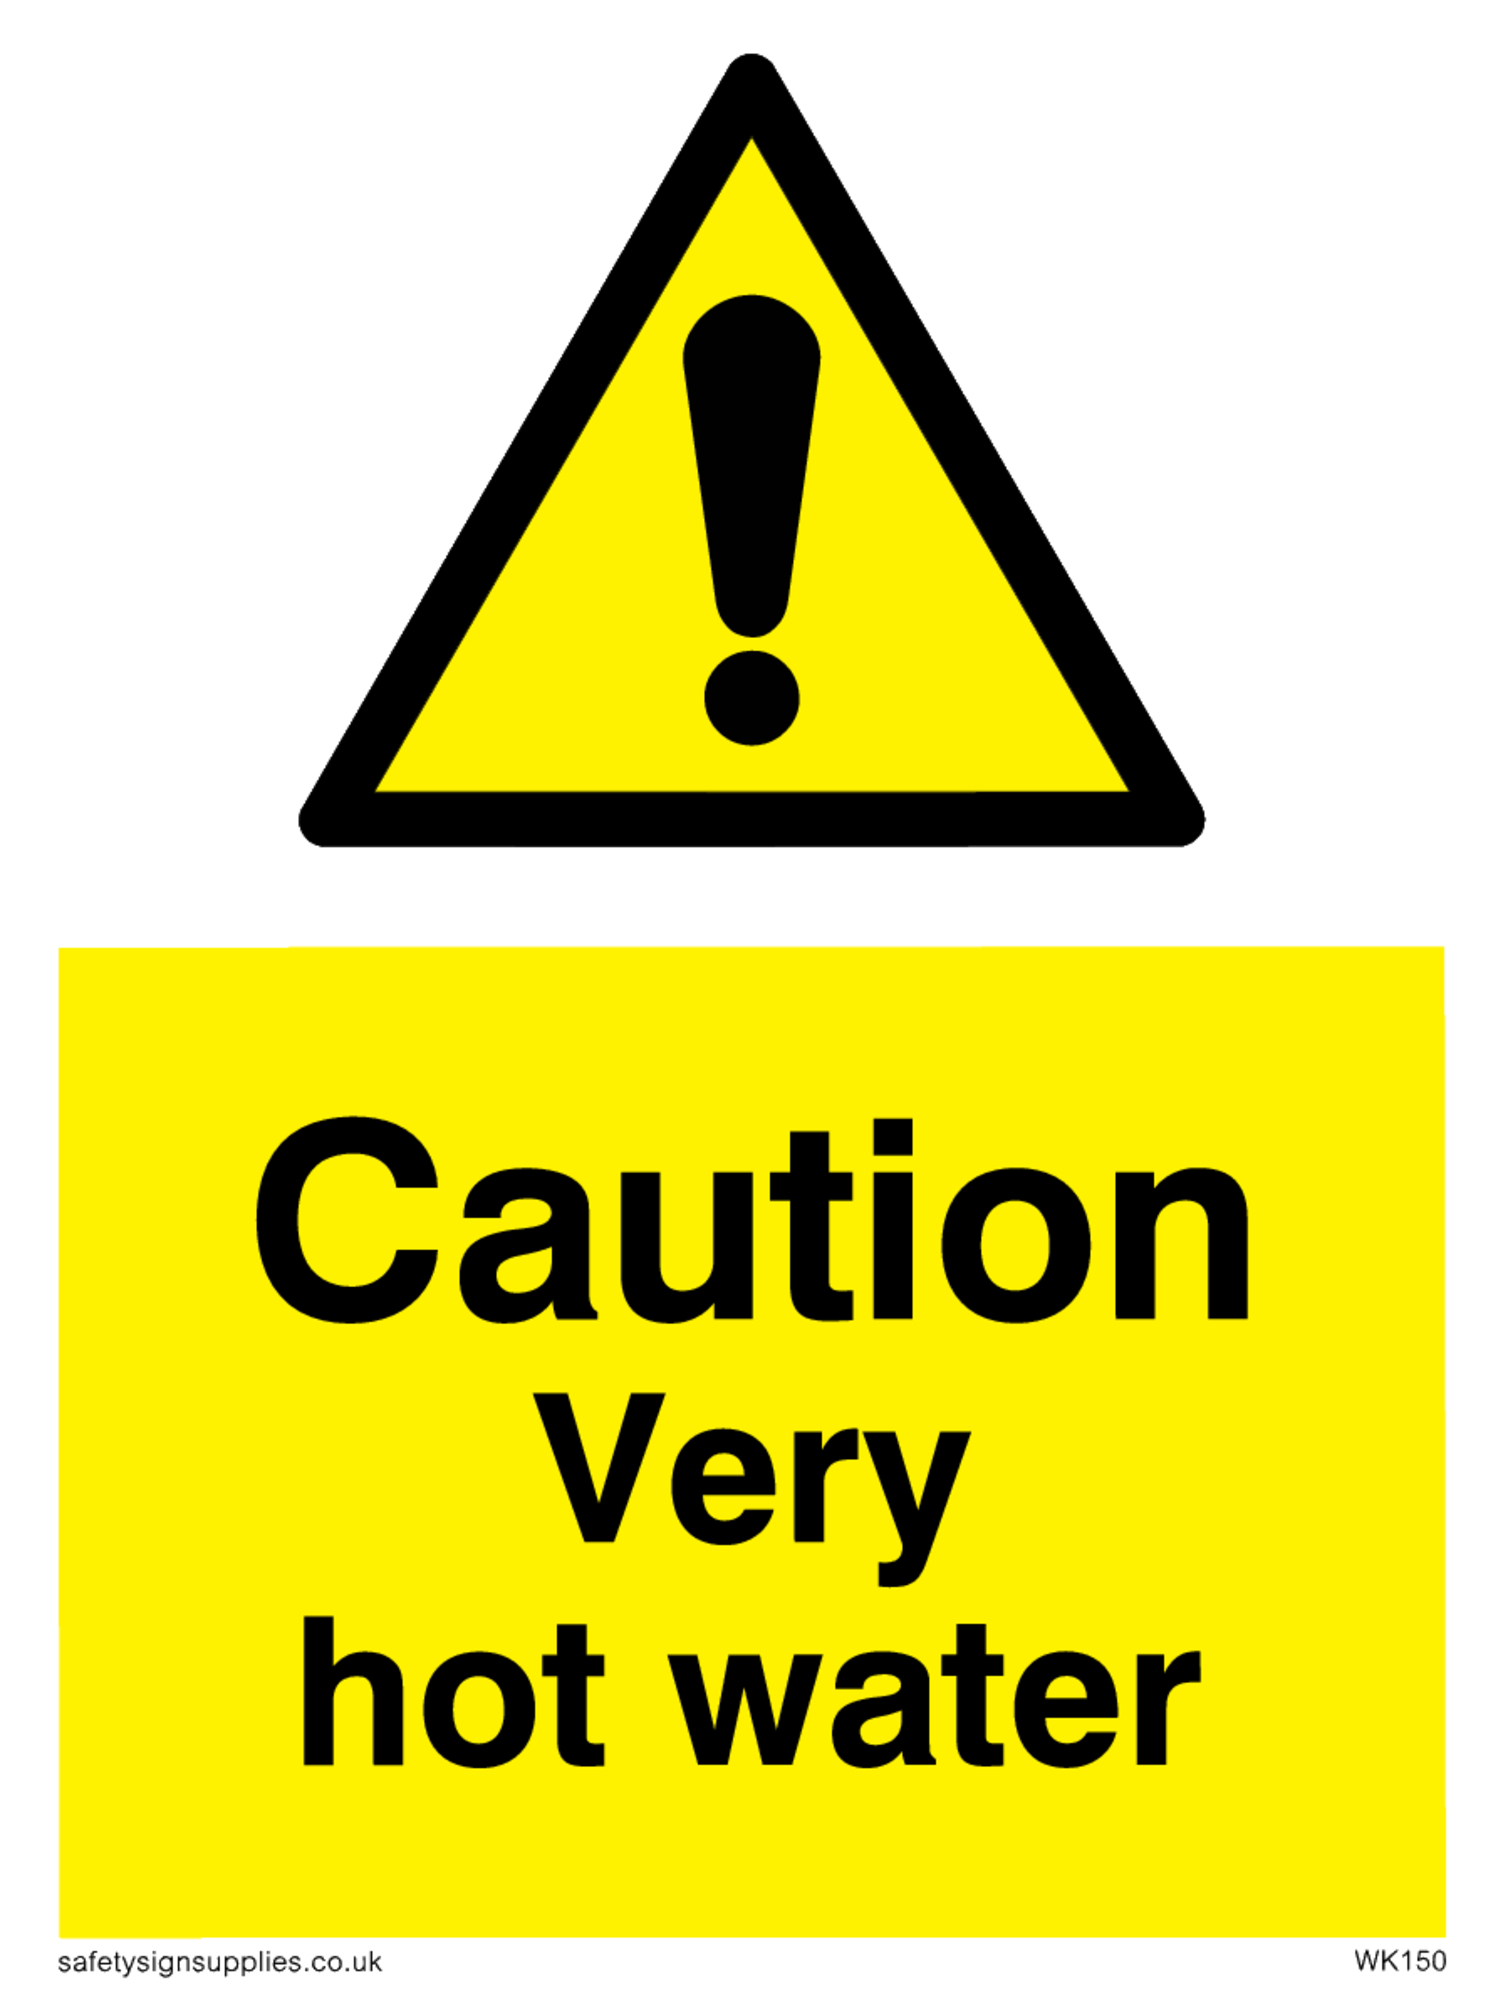 Caution Very Hot Water From Safety Sign Supplies - Free Printable Safety Signs